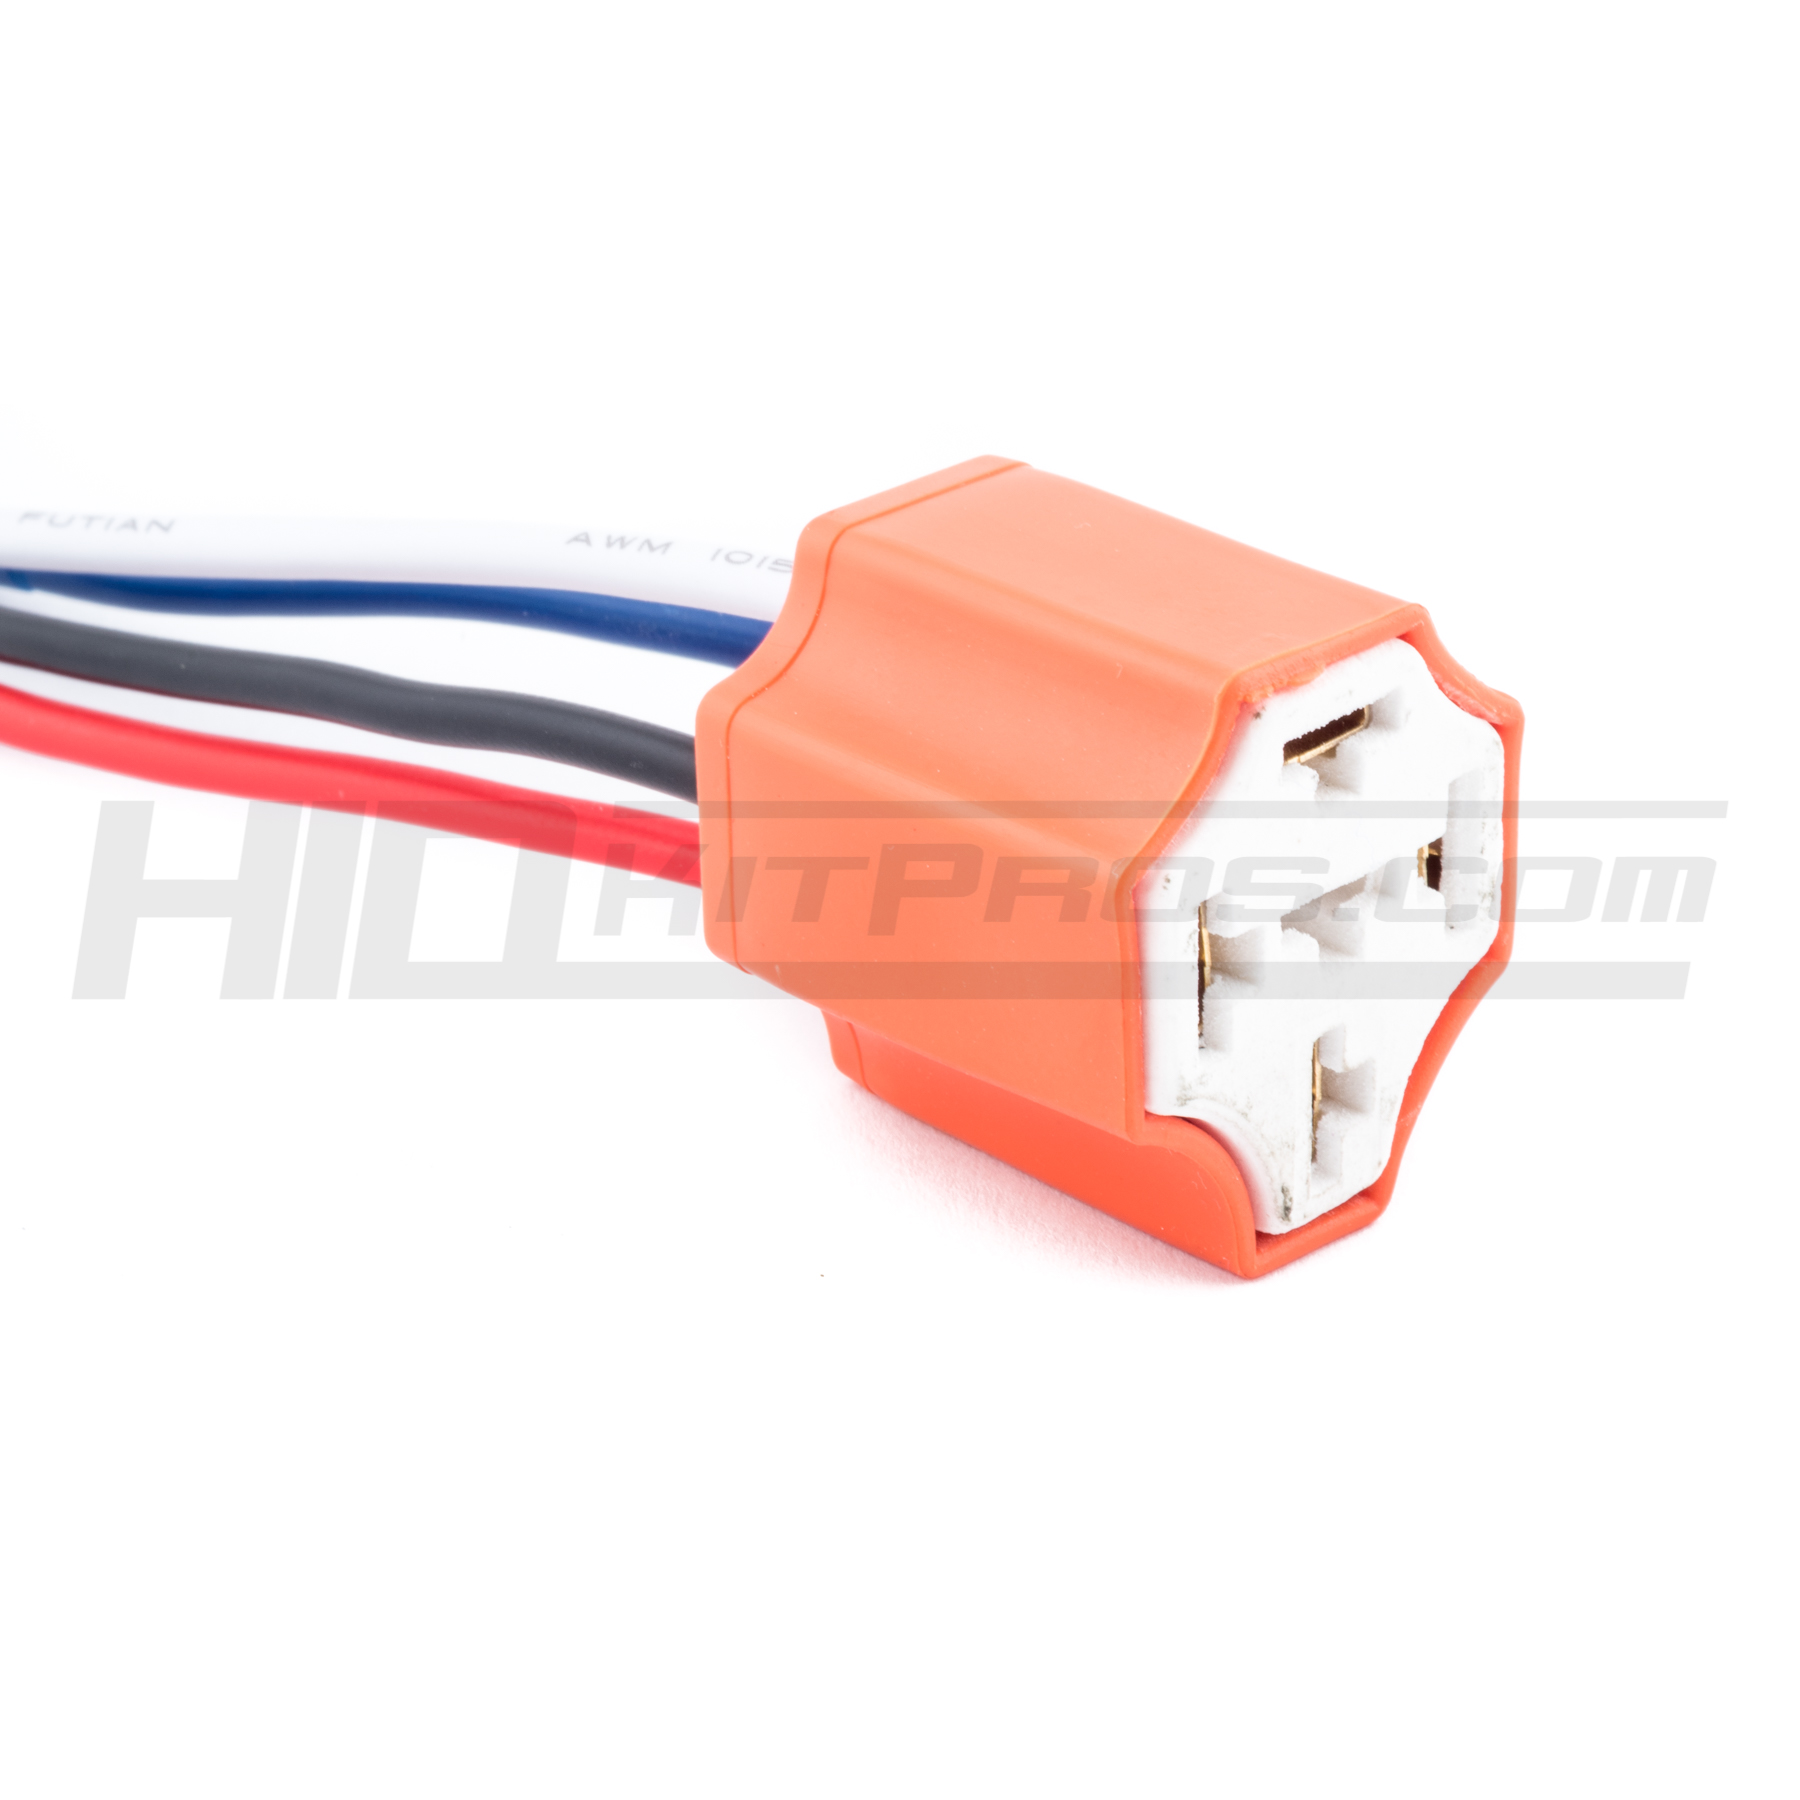 Relay Pigtail Adapter | 4 Pin | HID Kit Pros on 4 pin usb cable, 4 pin spark plug, 4 pin power supply, 4 pin relay, 4 pin power cord,